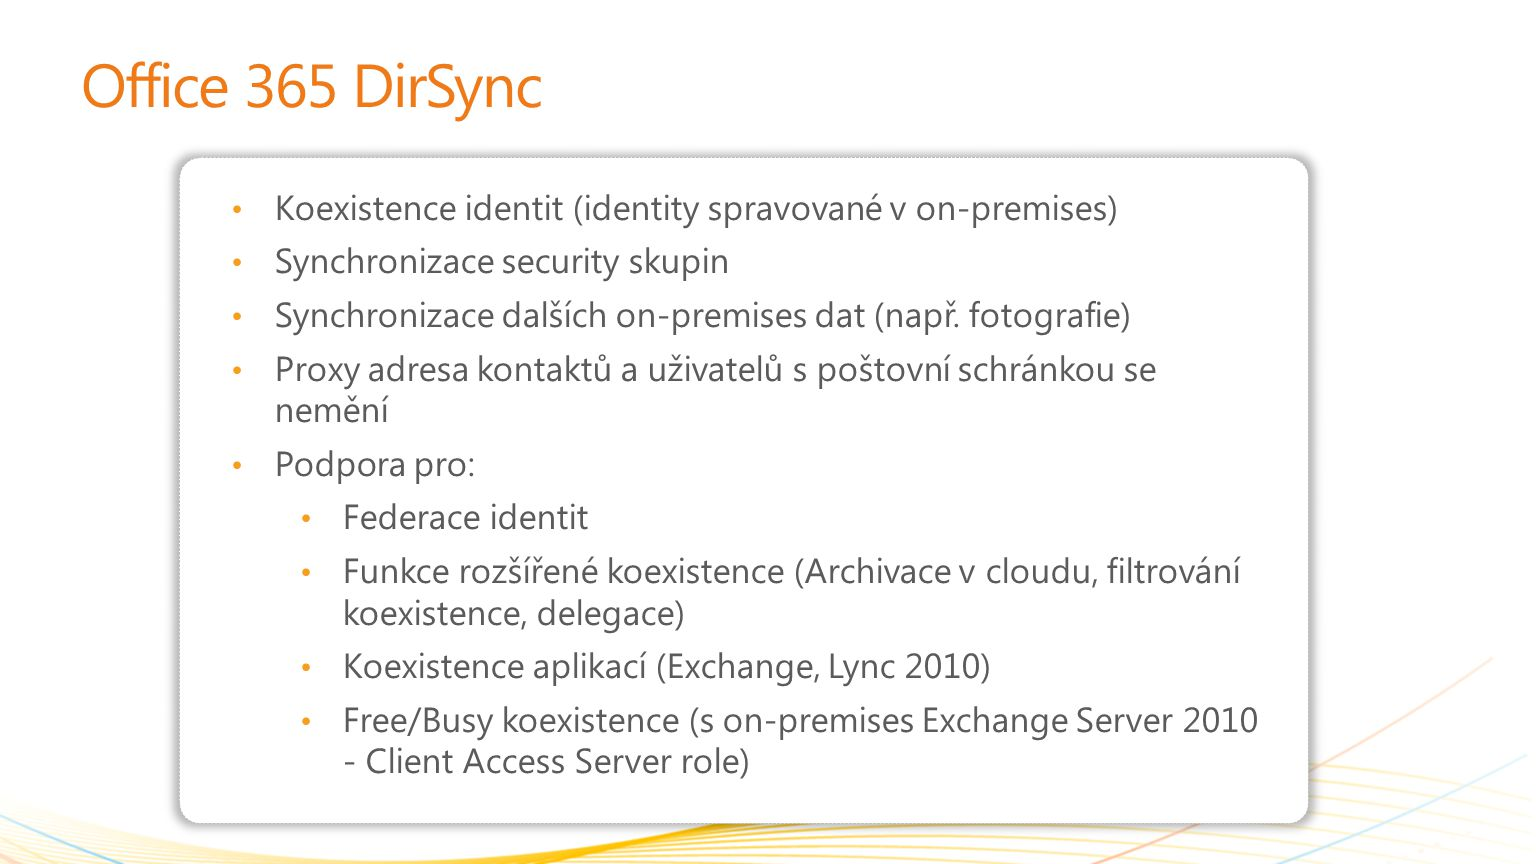 Office 365 DirSync Koexistence identit (identity spravované v on-premises) Synchronizace security skupin.